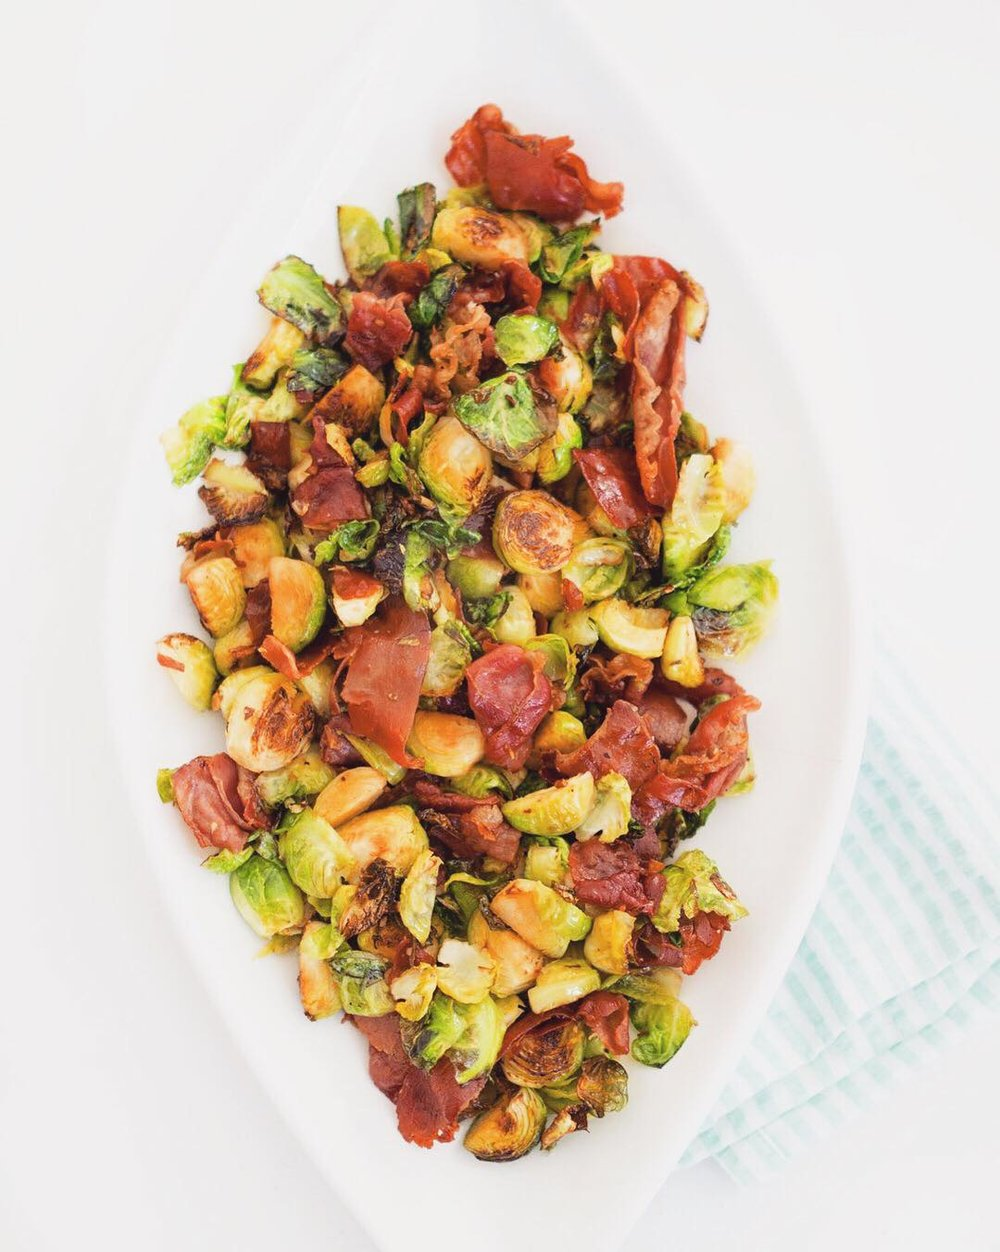 Roasted Brussels Sprouts with Prosciutto